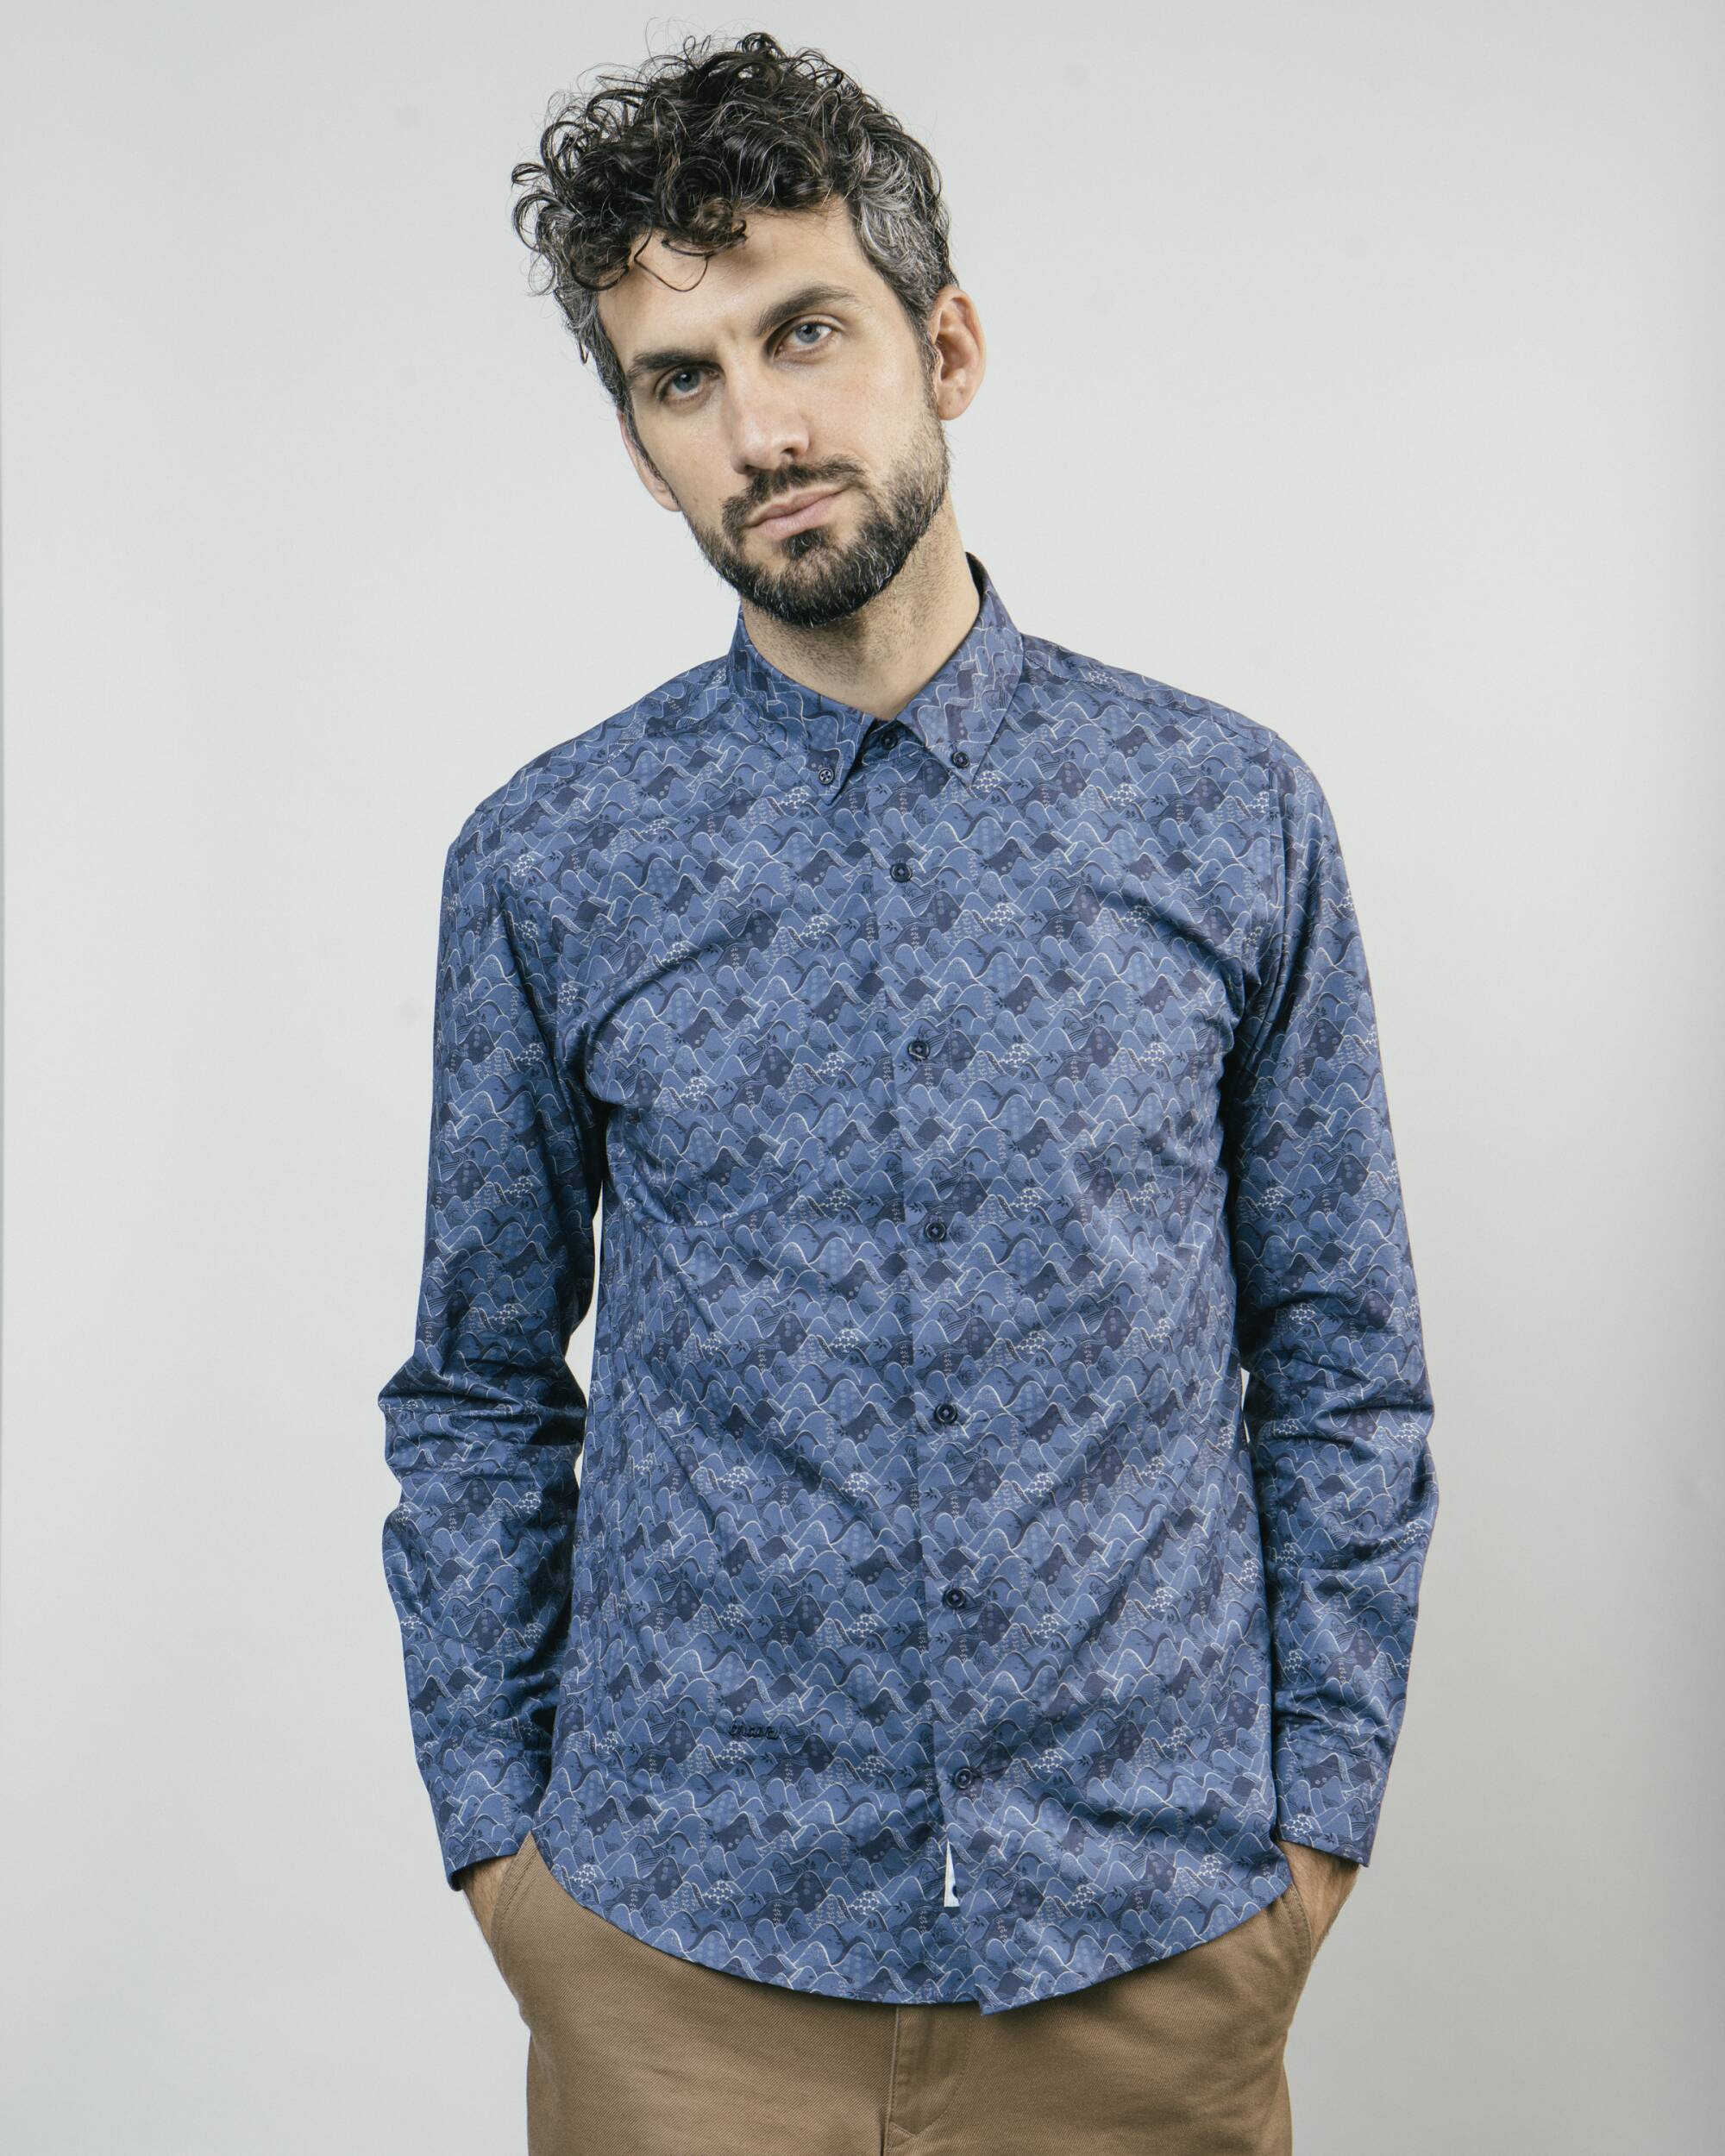 Brava Fabrics - Men's Shirt - Printed Shirt - Printed Shirts for Men - 100% Organic Cotton - Model Ibuki Mountains